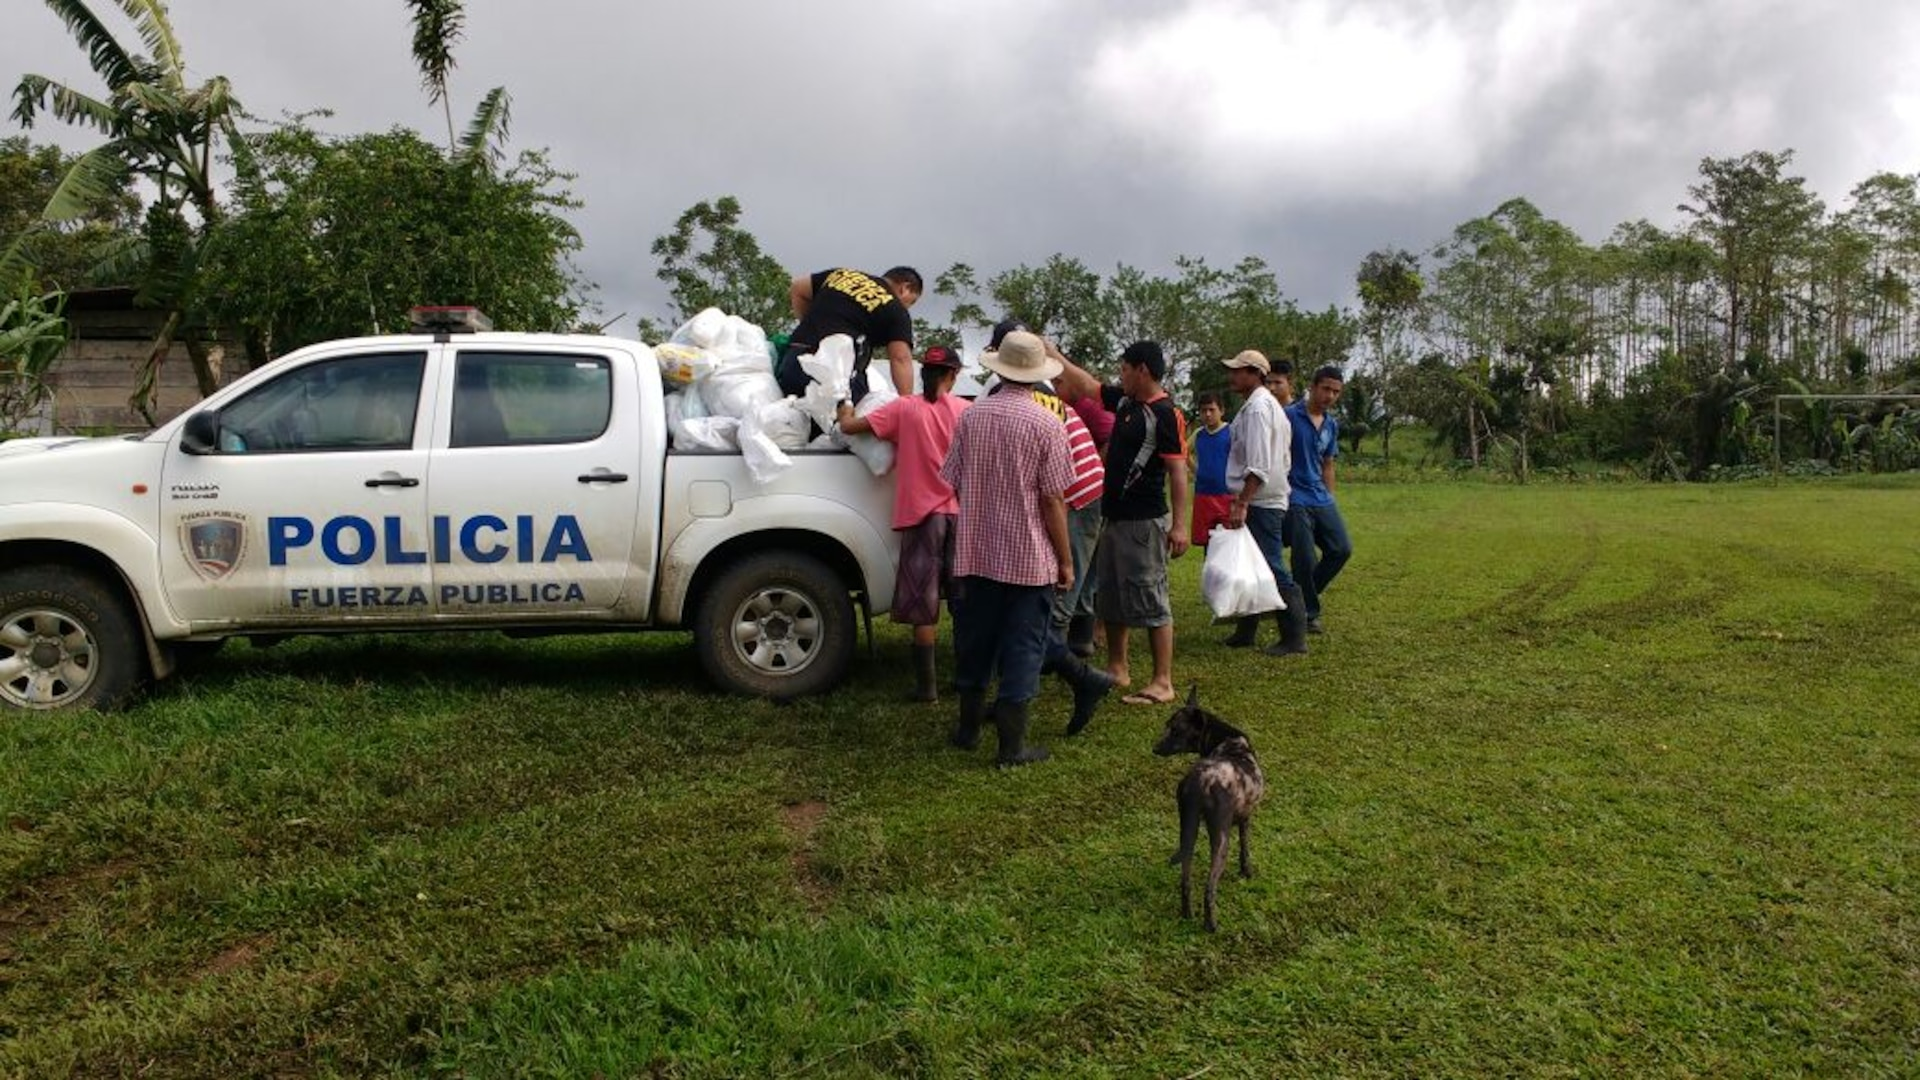 Costa Rican police bring supplies to areas of the country damaged during Hurricane Otto which hit the county Nov. 26. Joint Task Force Bravo in Soto Cato Air Base, Honduras sent two personnel to assist the Costa Rican country team and other emergency response organizations to identify engineer requirements and humanitarian assistance projects.